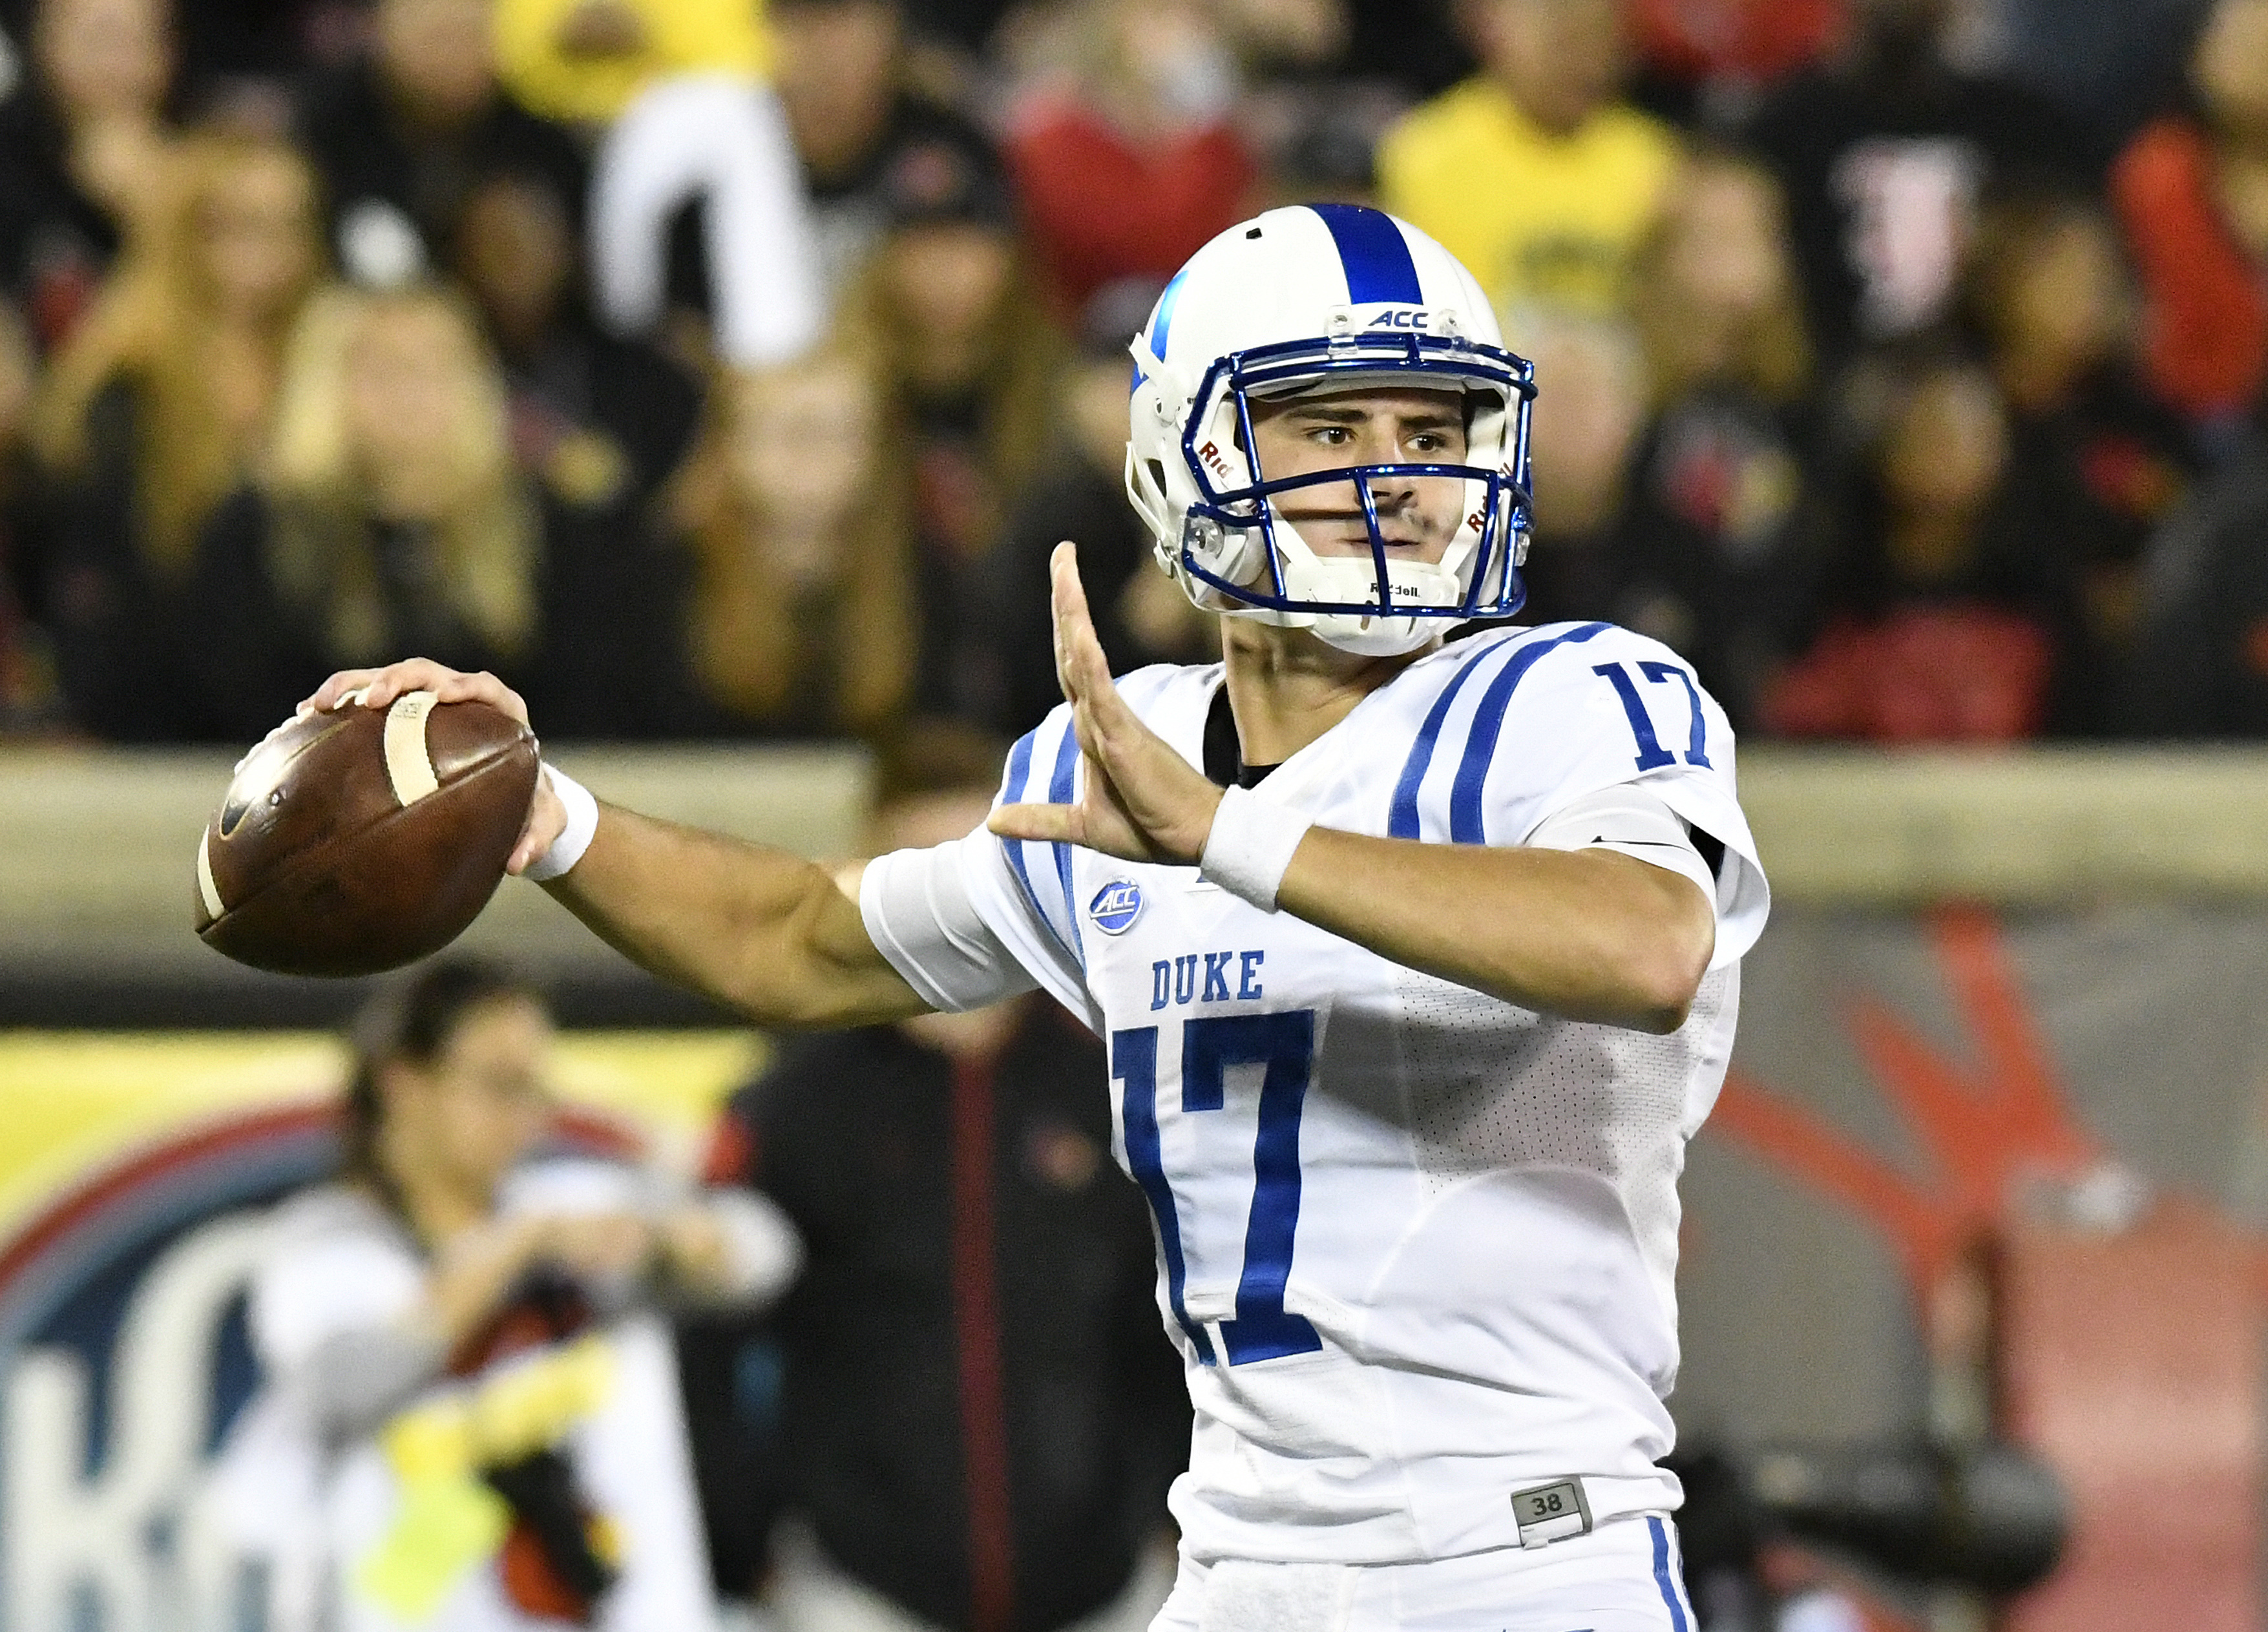 Duke's Daniel Jones (17) makes a pass during the first half of an NCAA college football game against Louisville, Friday, Oct. 14, 2016, in Louisville, Ky. (AP Photo/Timothy D. Easley)